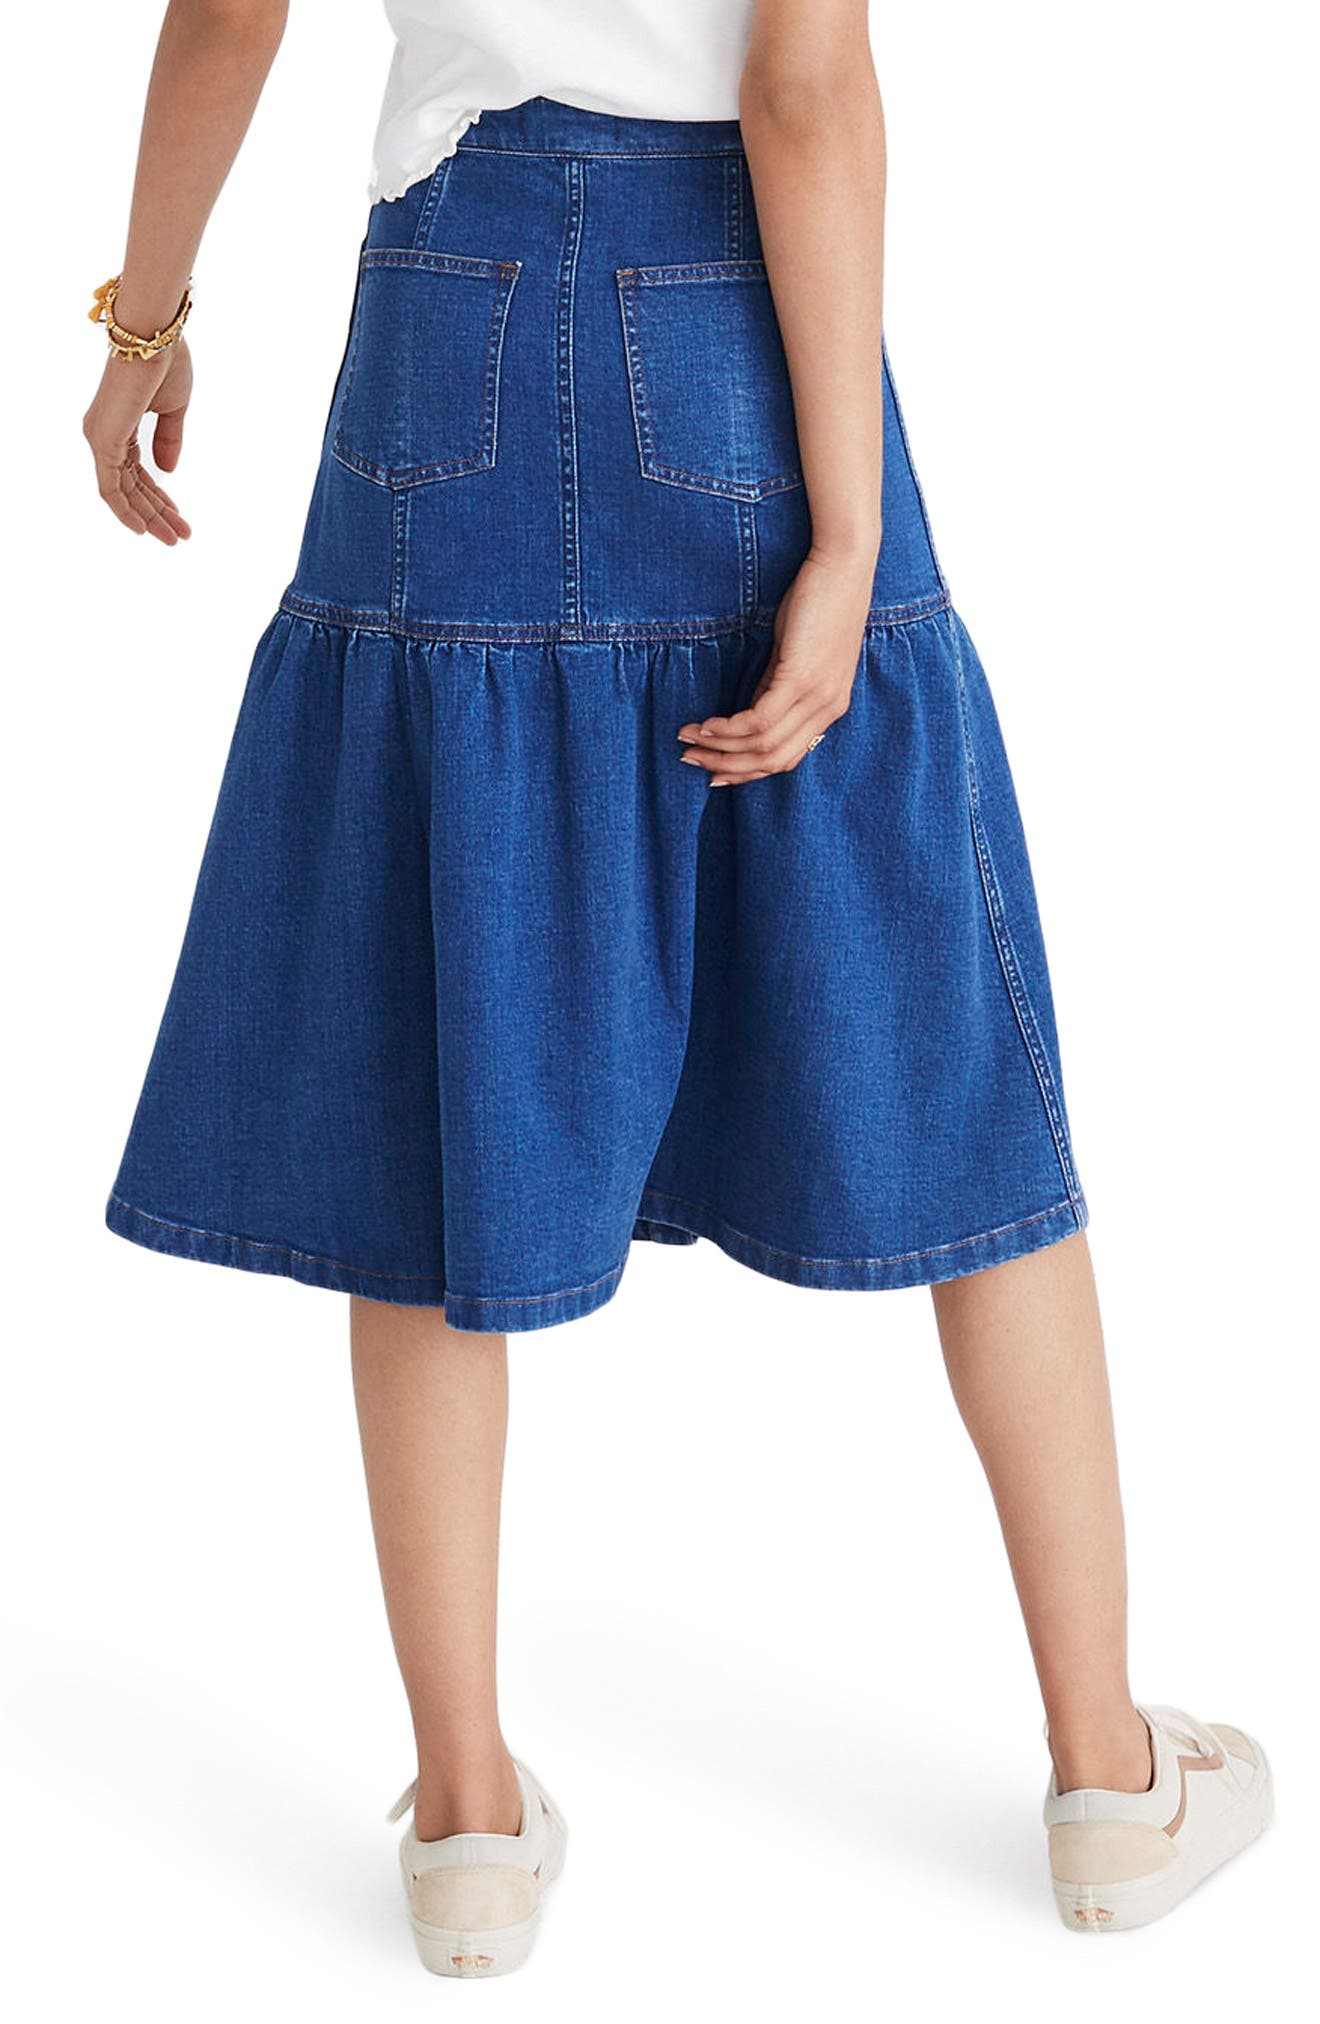 Bayview Tiered Denim Midi Skirt,                             Alternate thumbnail 2, color,                             Winona Wash